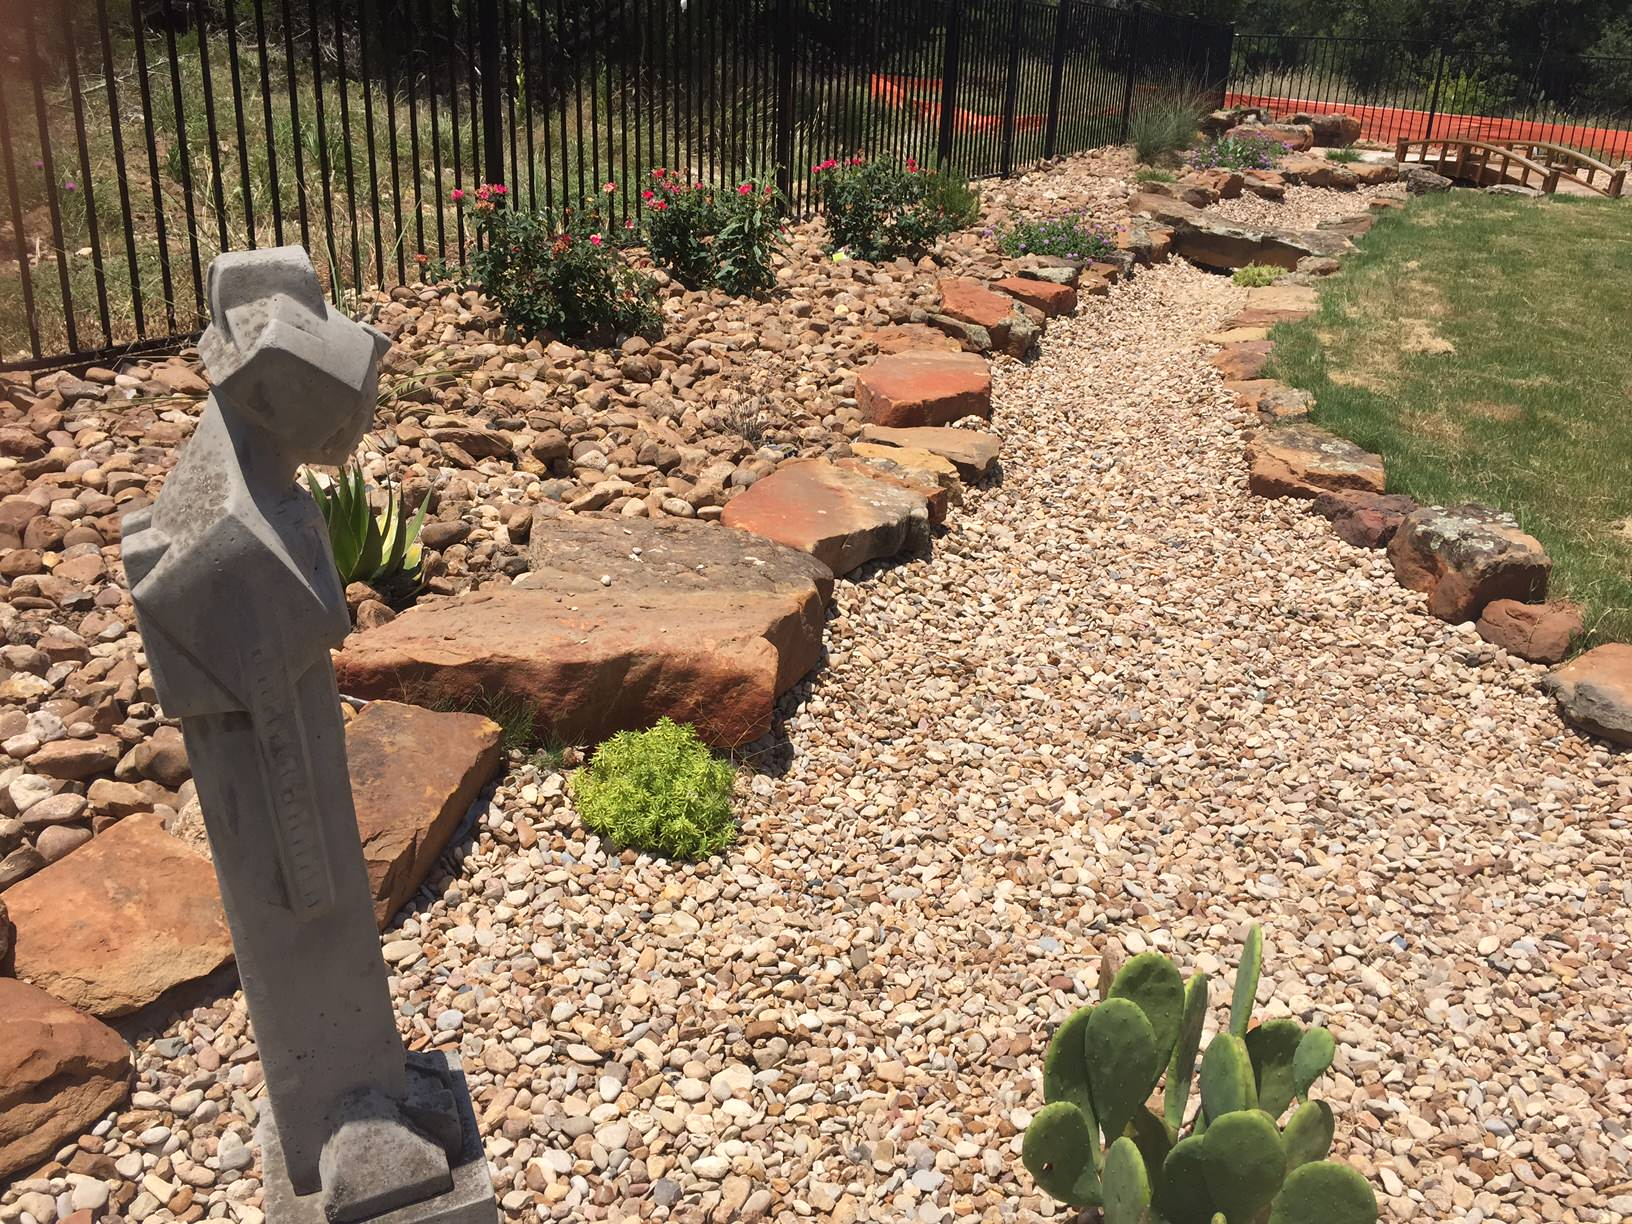 Xeriscape w/ dry creek bed for drainage